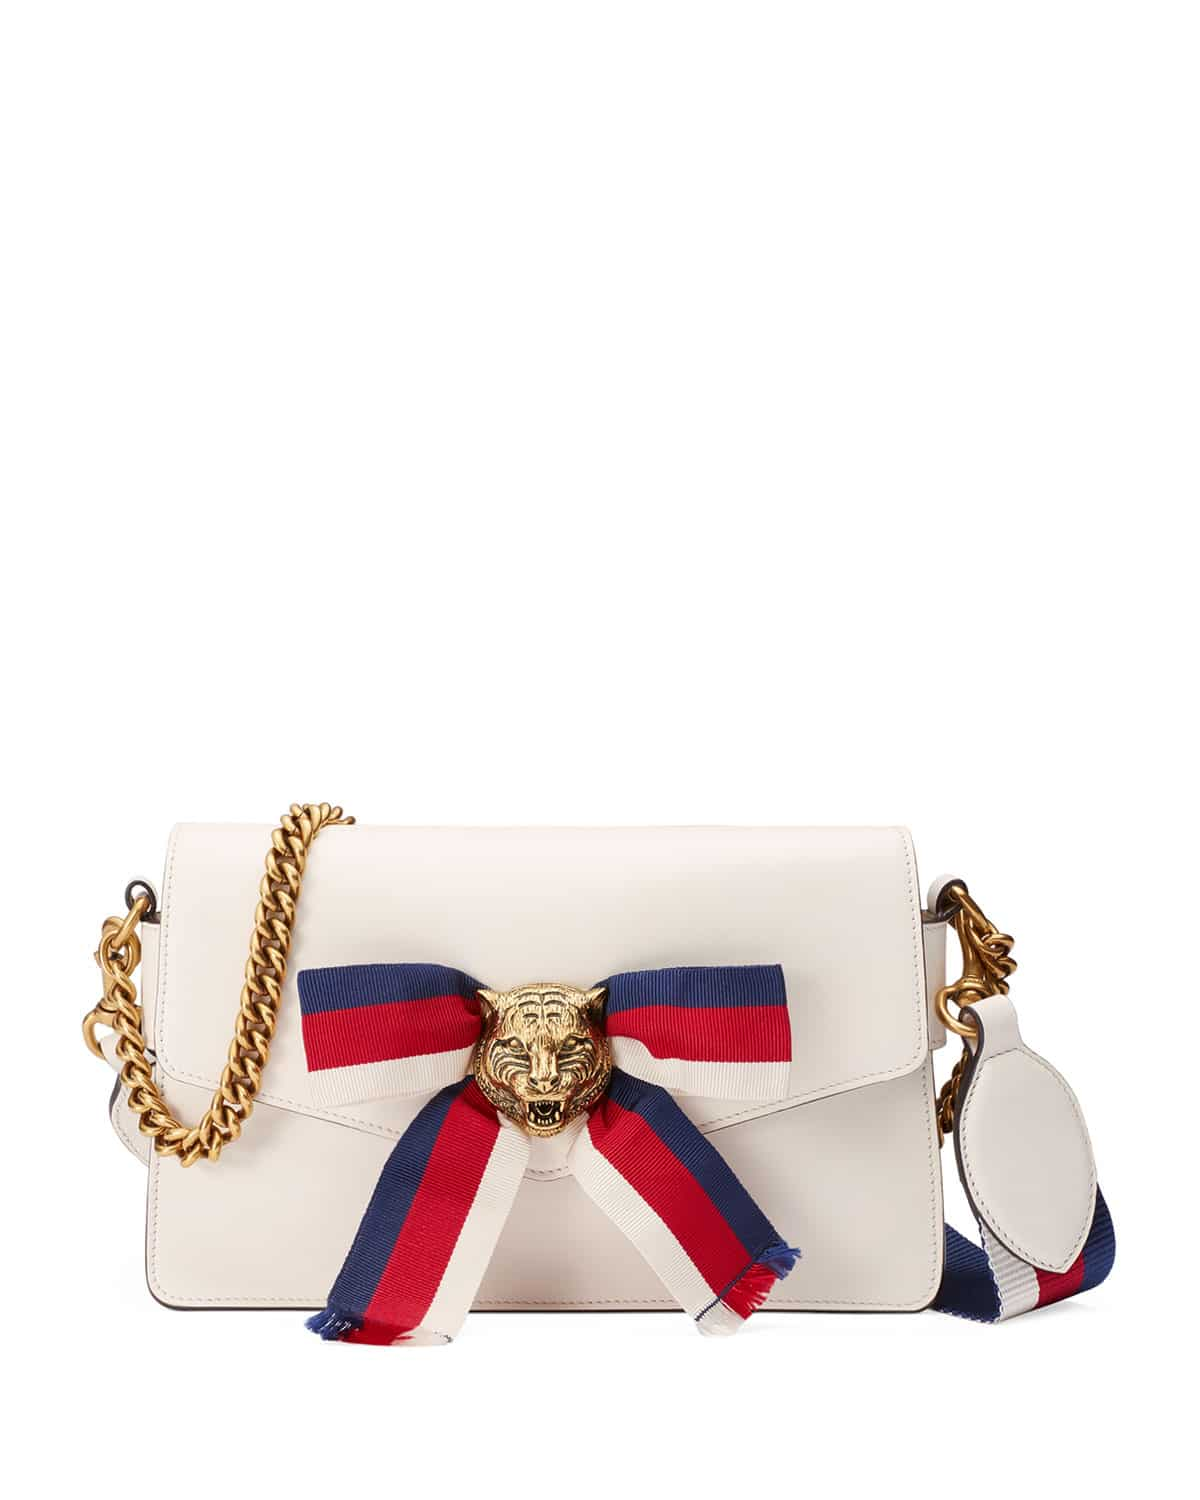 Gucci Resort 2017 Bag Collection Spotted Fashion